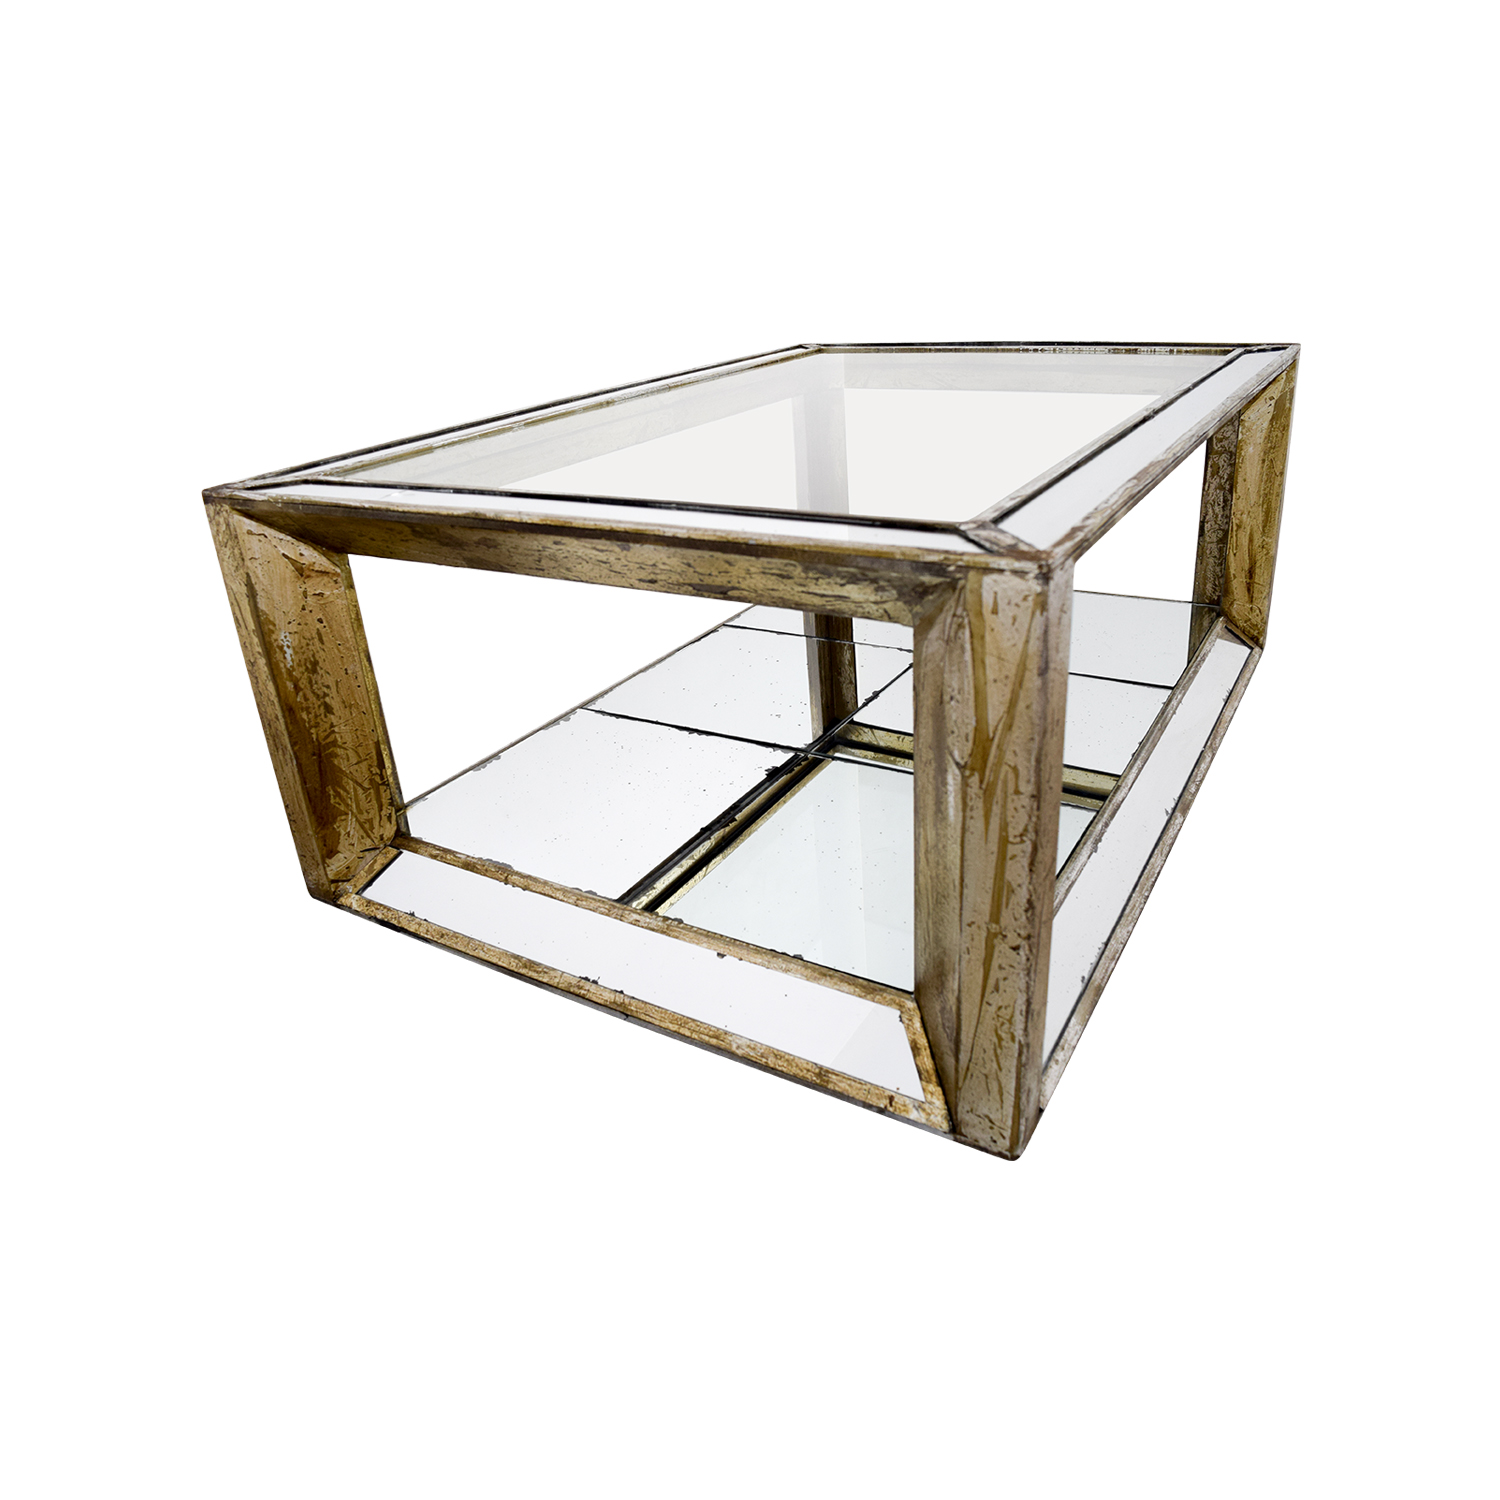 86 Off Houston Furniture Houston Furniture Mirror And Glass Coffee Table Tables